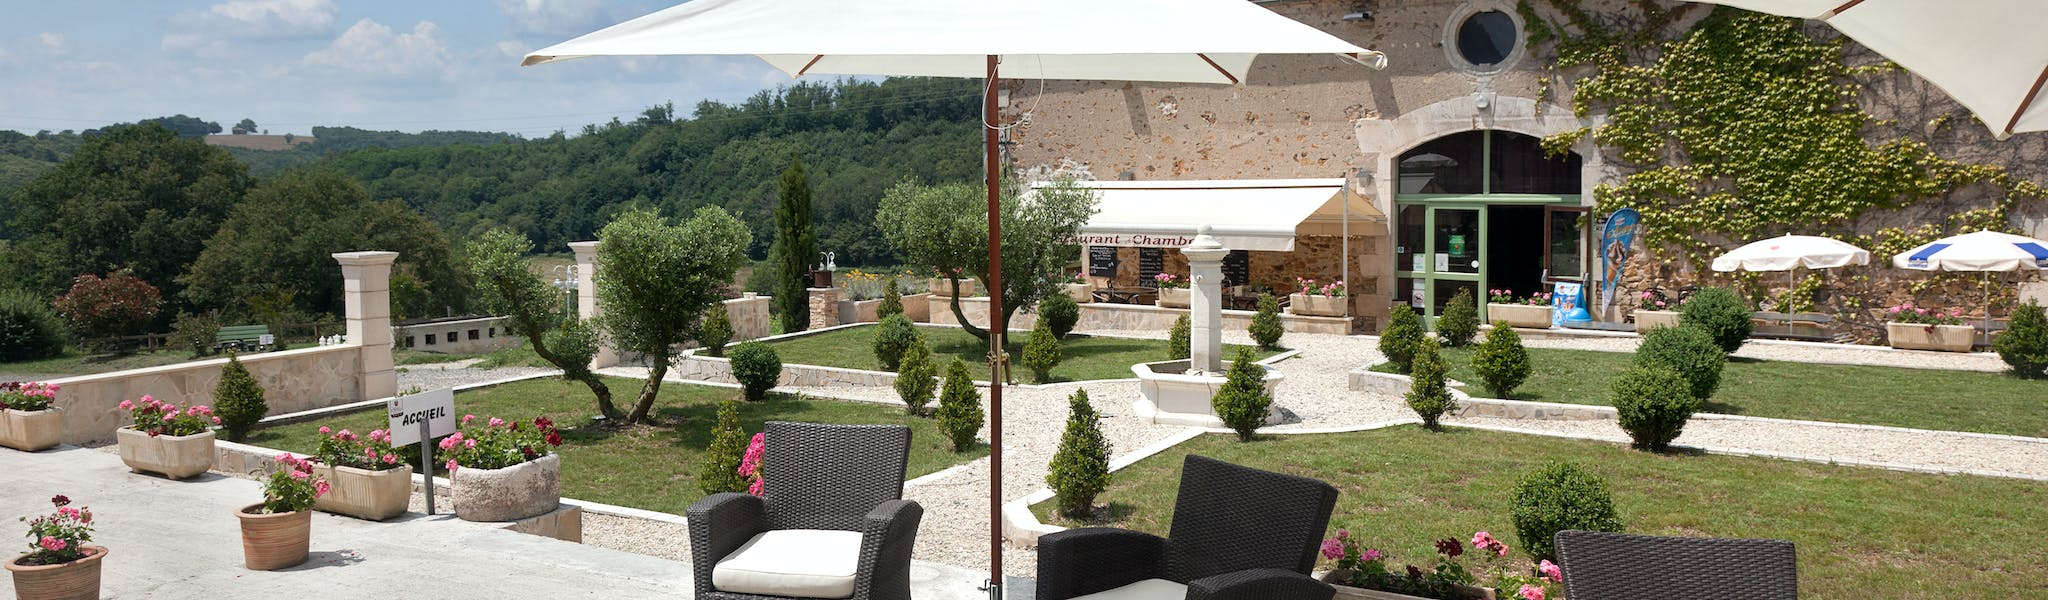 Camping Gorges du Chambon Limousin